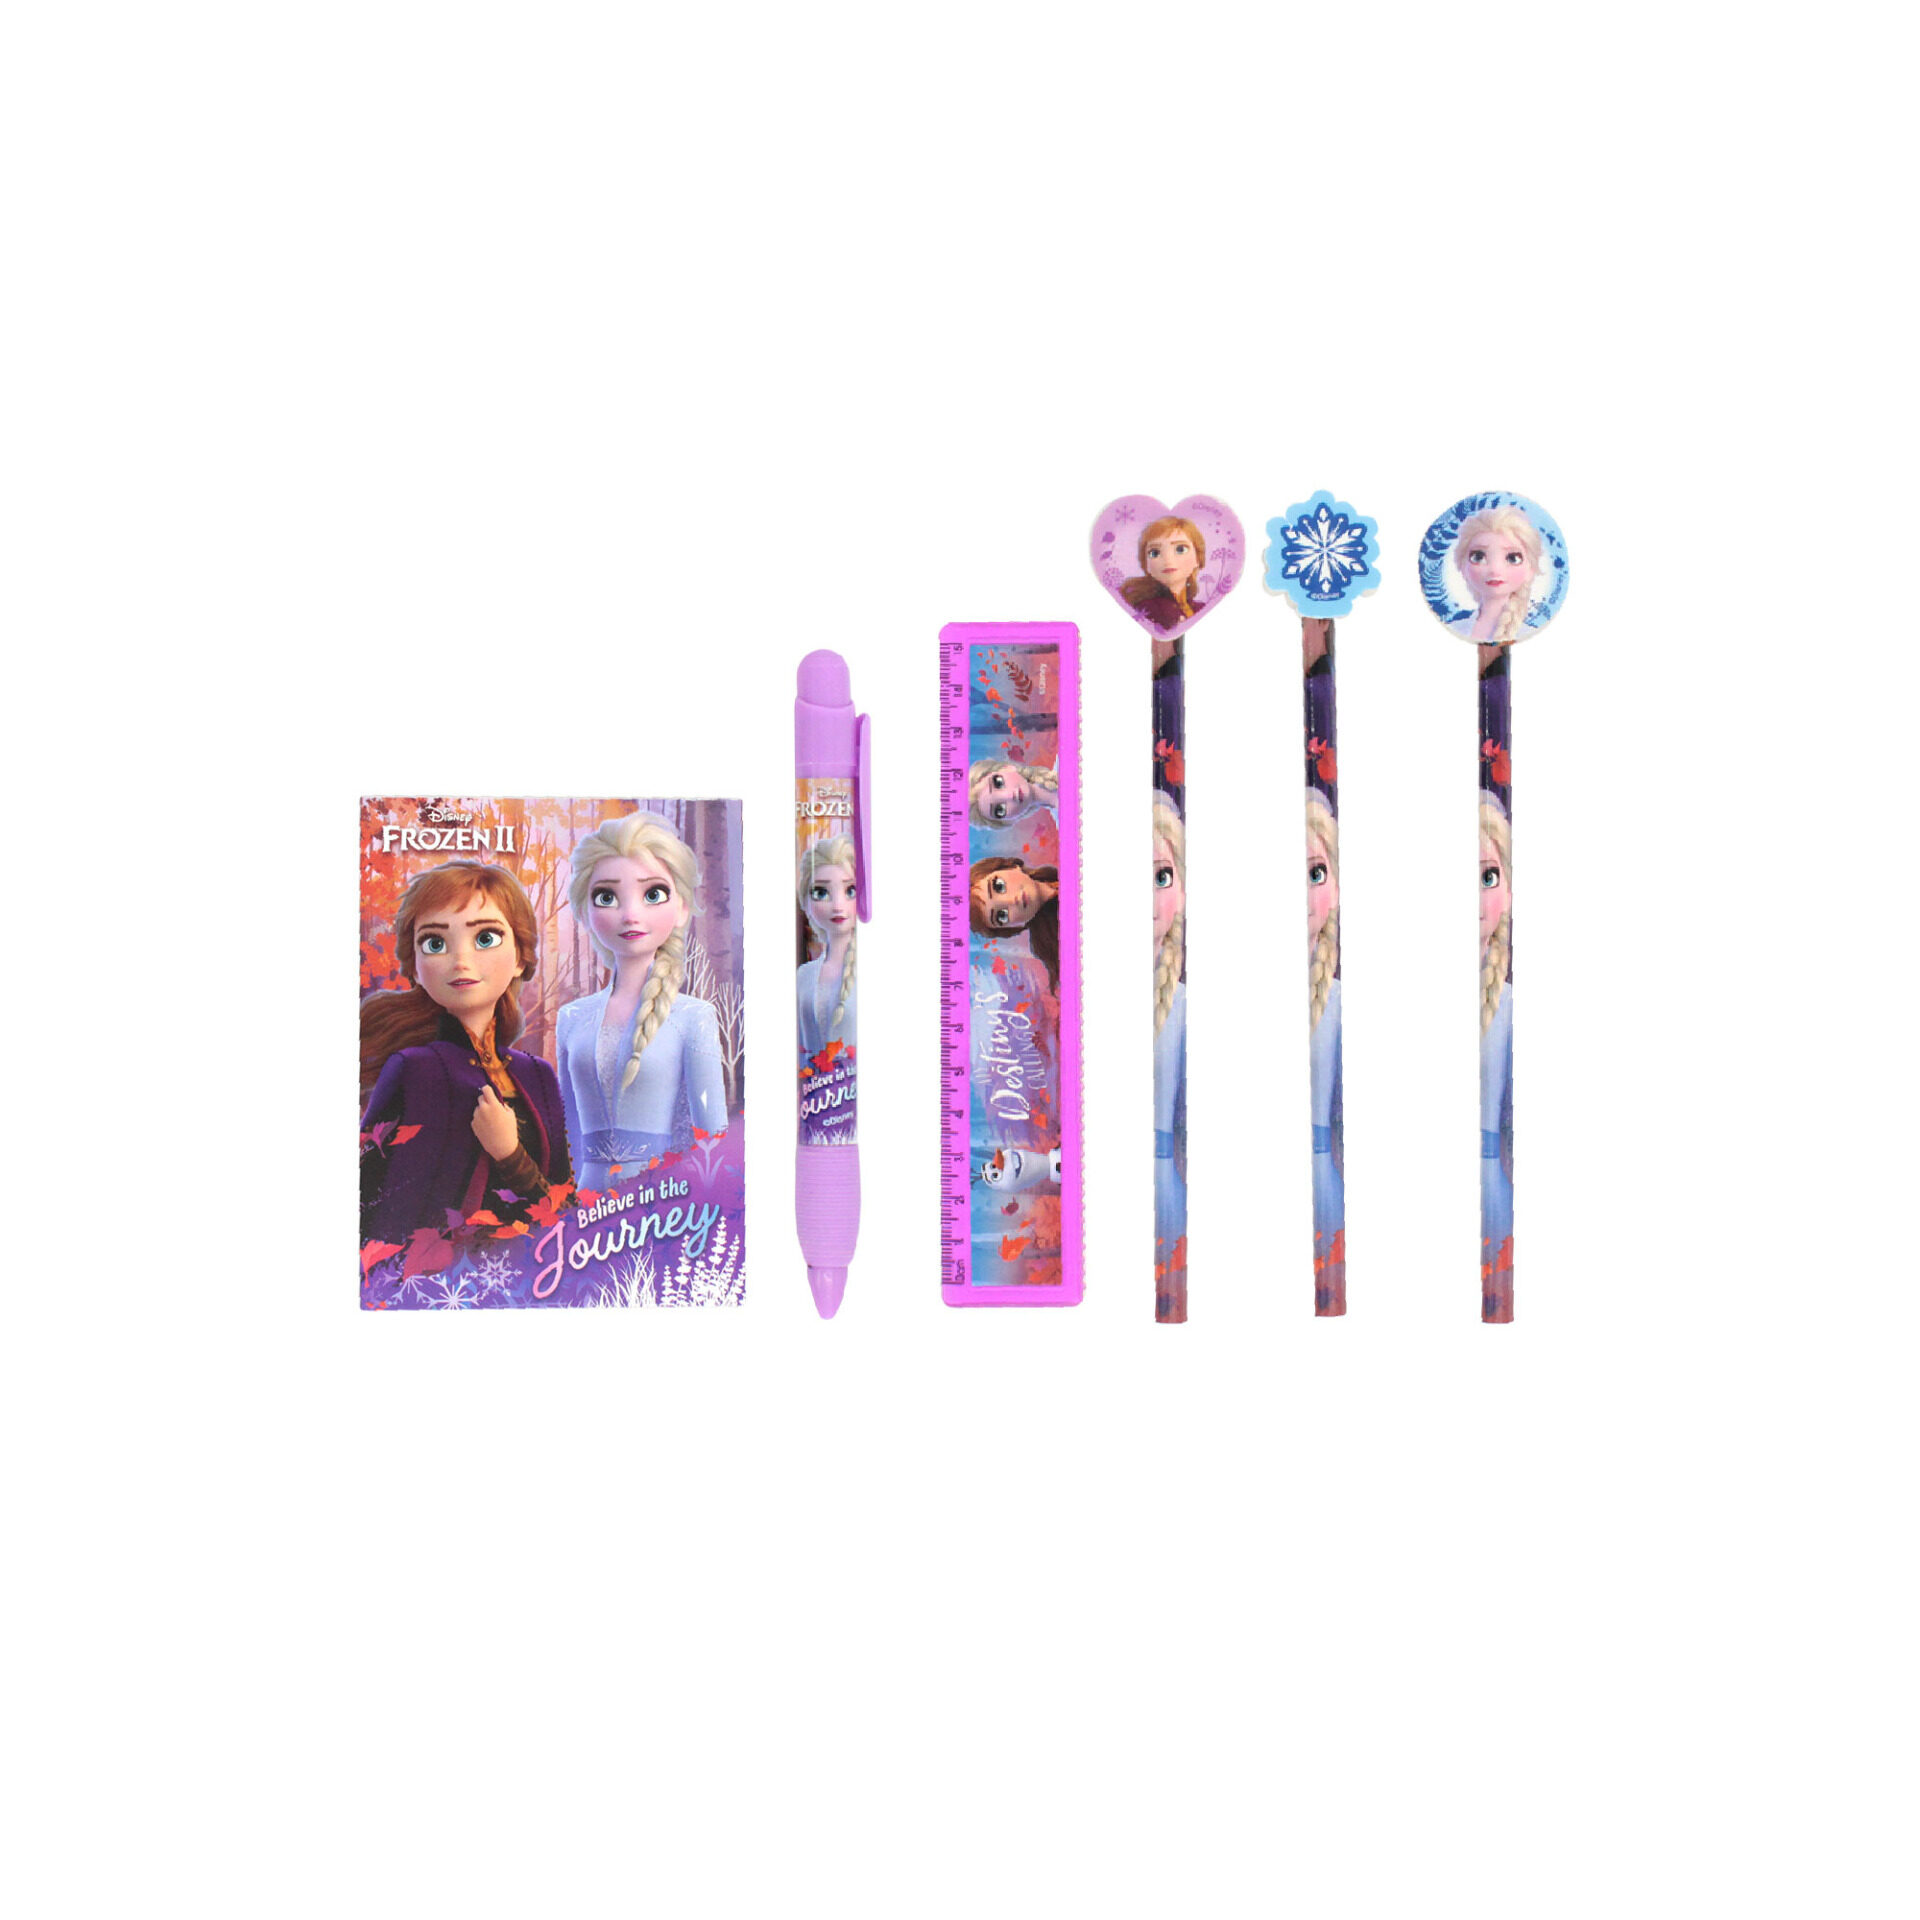 Disney Frozen 2 Princess Elsa & Anna All In 1 Big Stationery Case - 3 Pencils 1 Mechnical Pencil Ruler & Mini Notepad (Light Purple)